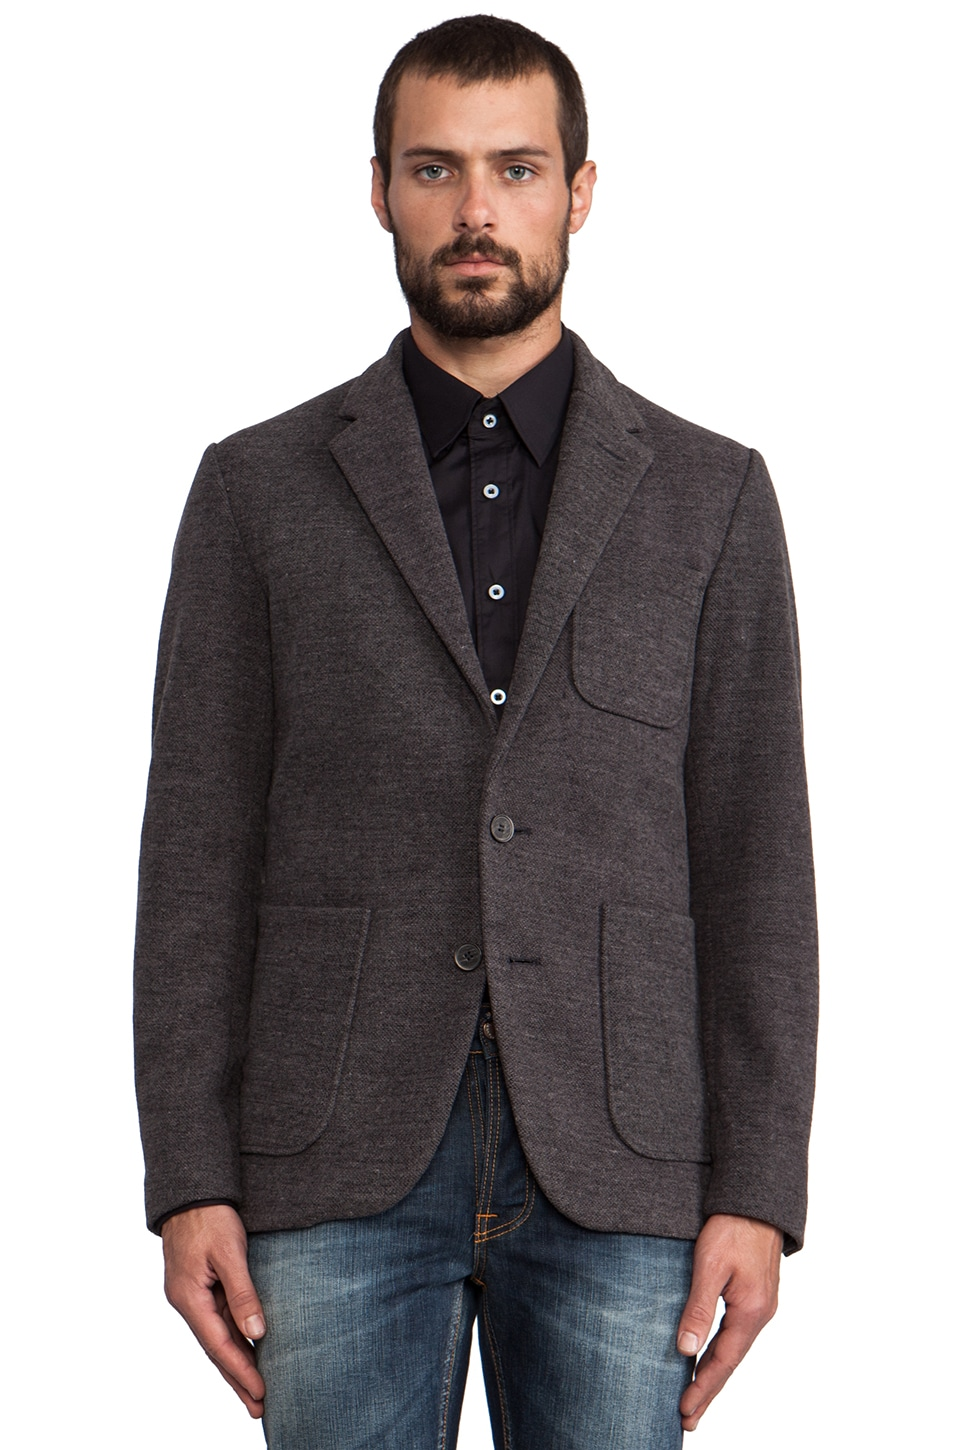 Shades of Grey by Micah Cohen 2 Button Knit Blazer in Charcoal Pique